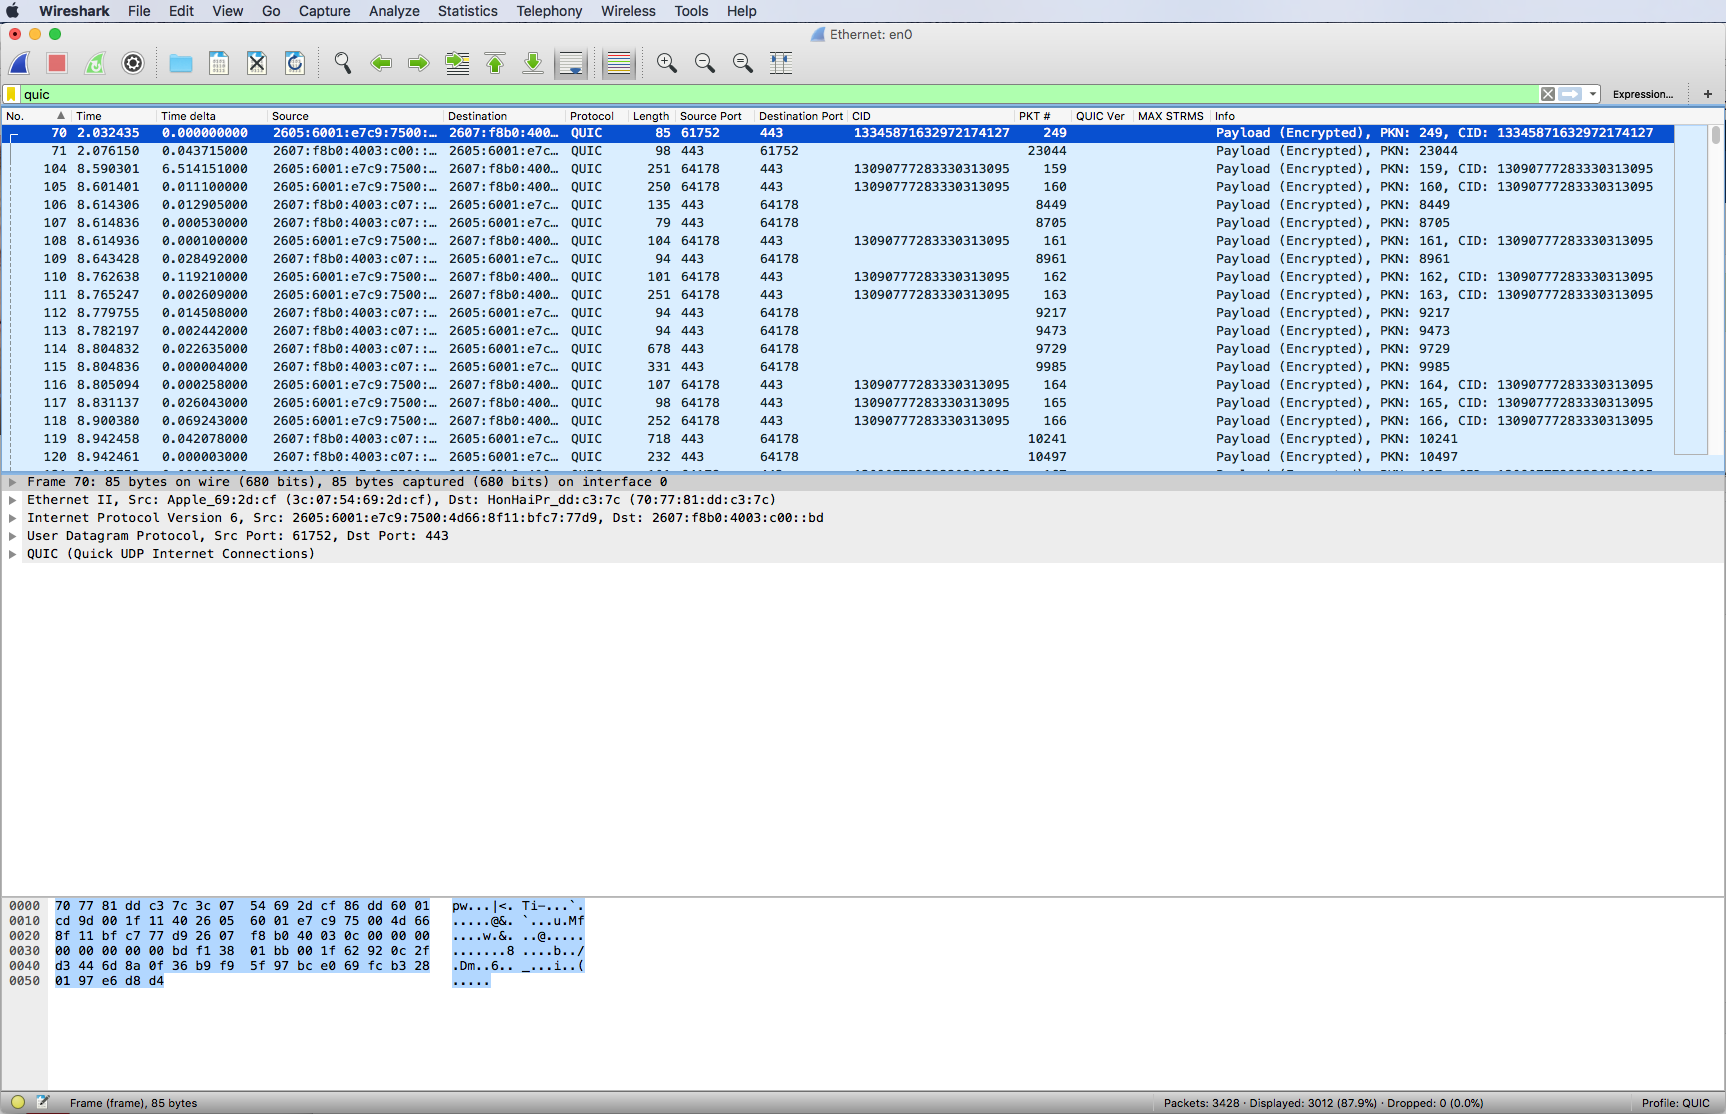 CellStream - Using Wireshark to Analyze QUIC/GQUIC Traffic